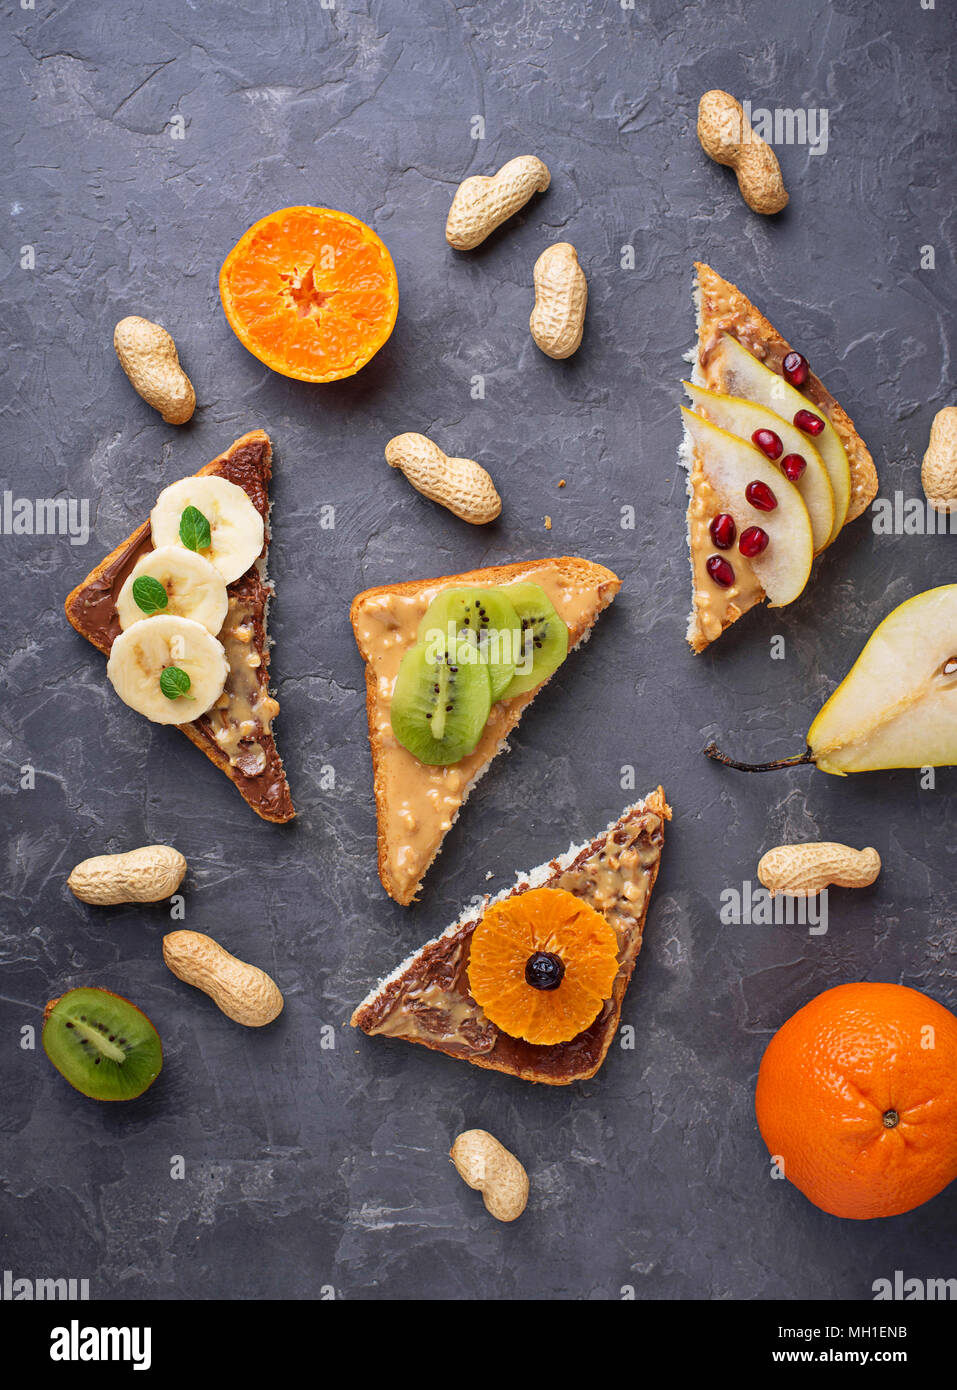 Healthy sweet sandwiches with peanut butter and fruits. Top view - Stock Image